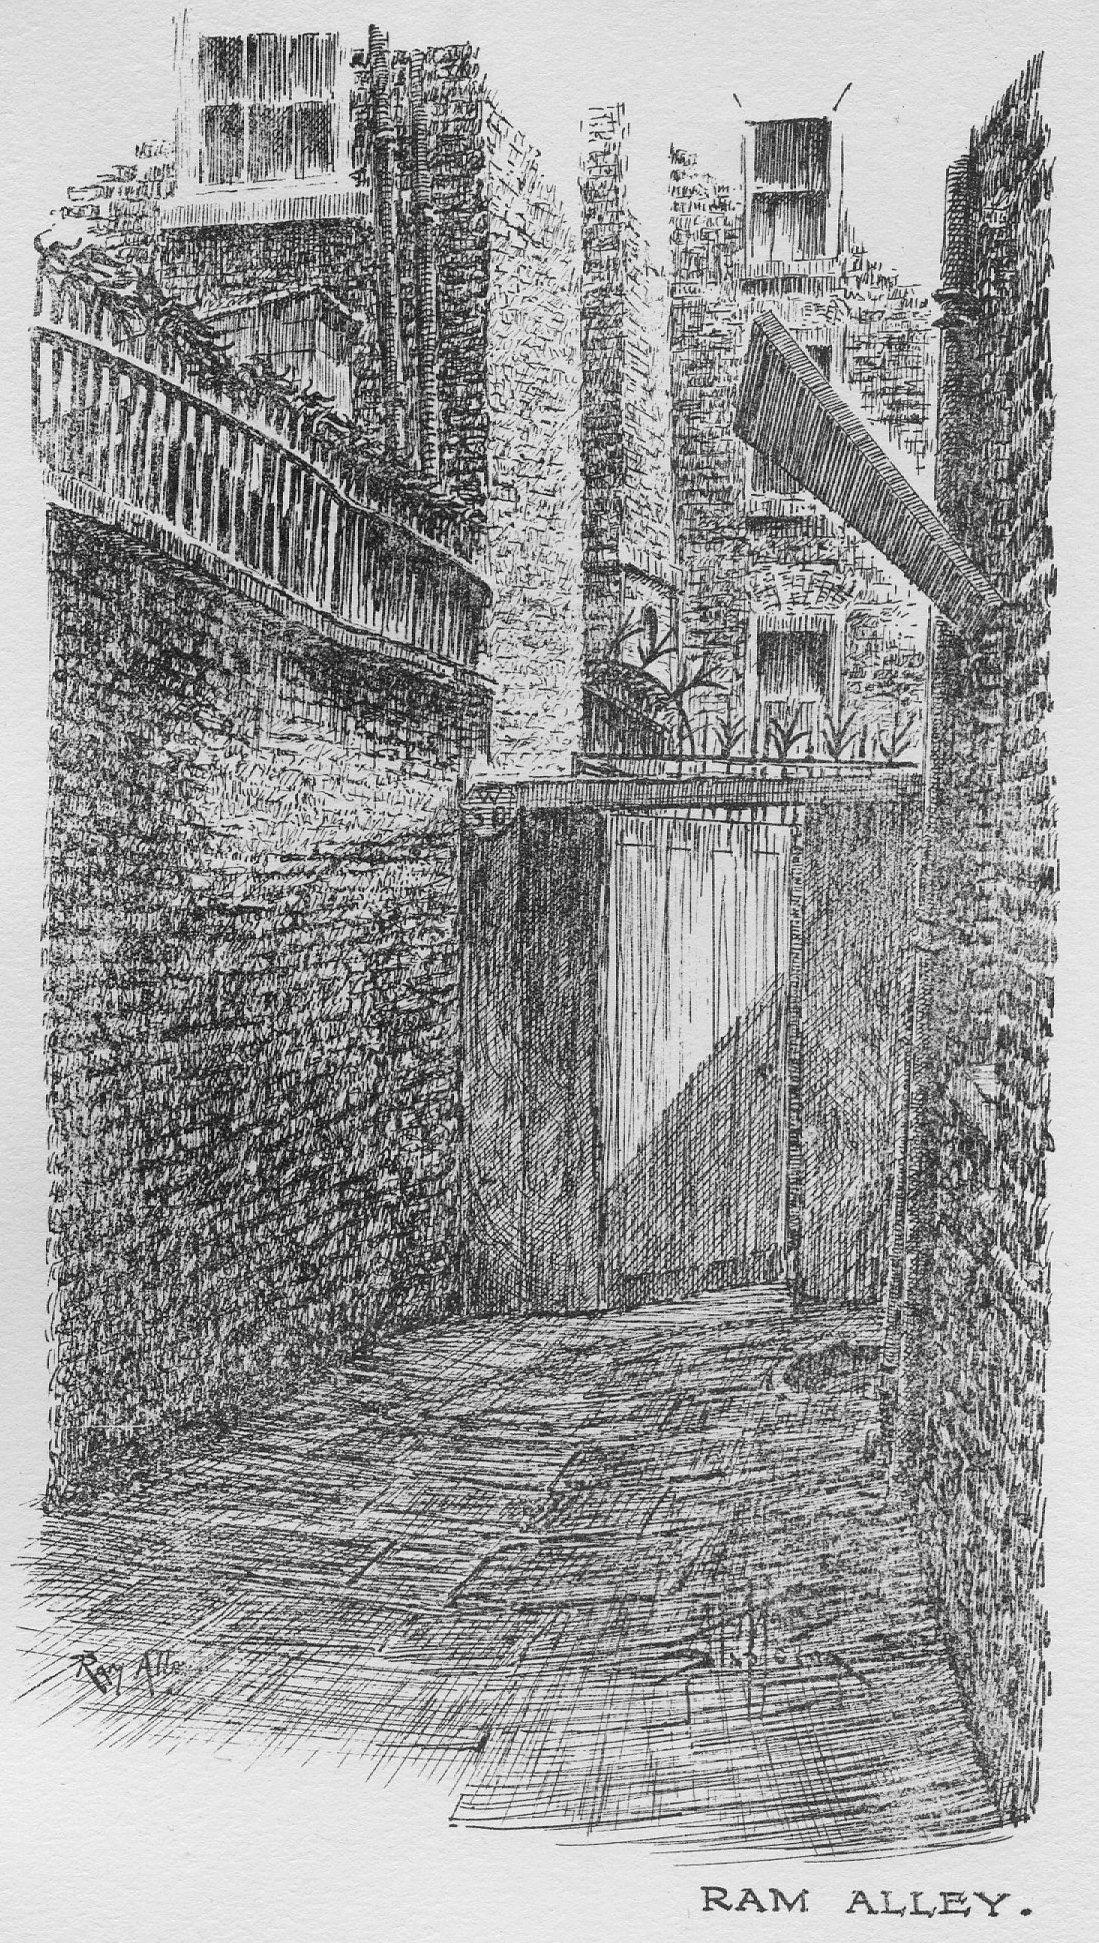 Lithograph of Ram Alley from Stapleton (1924).